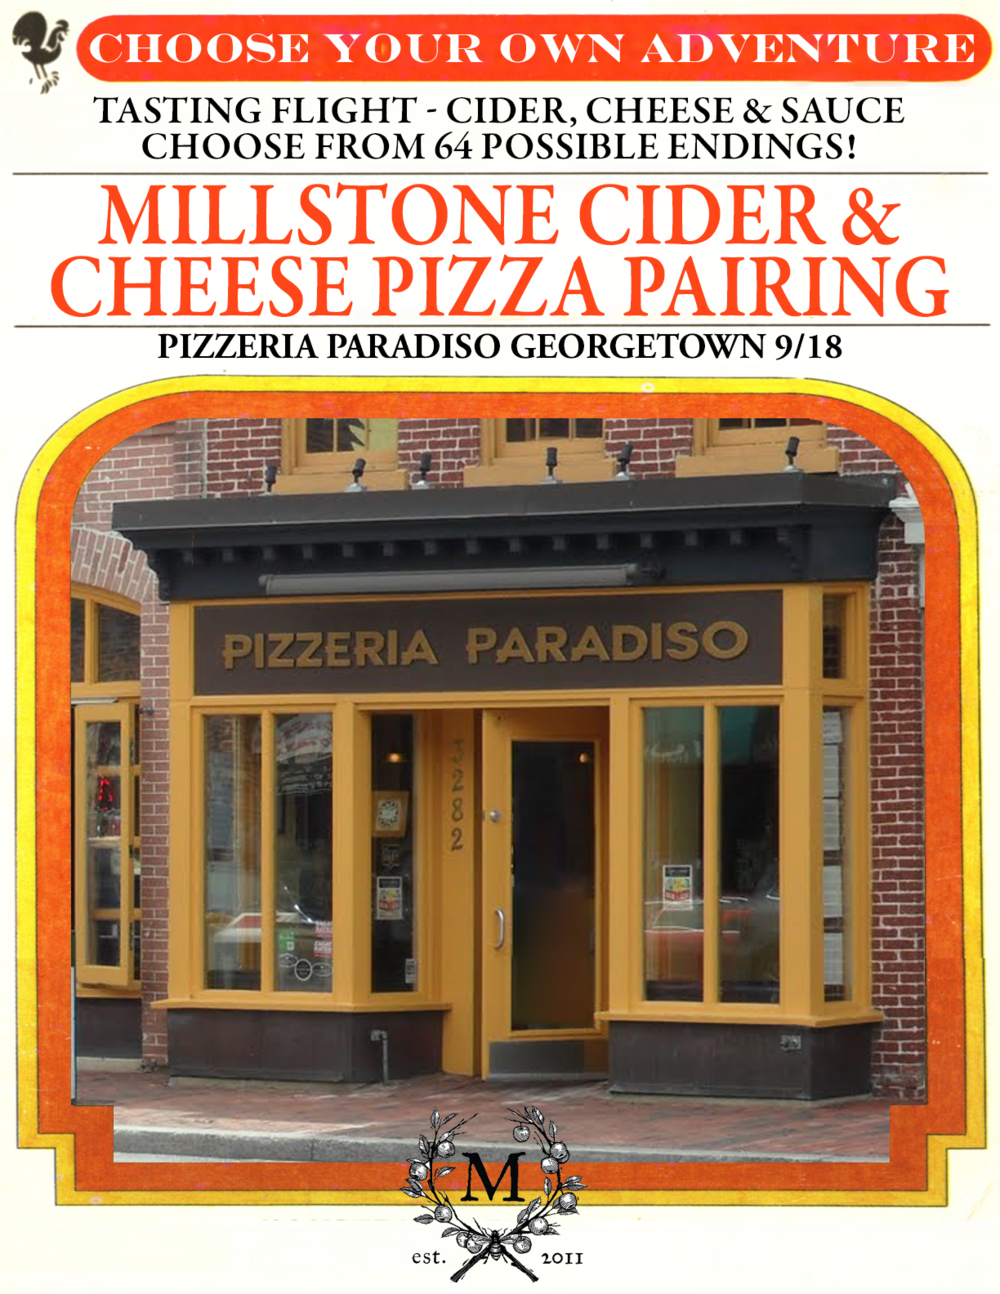 millstone-cider-pairing-2015-6-without-orange-box.png